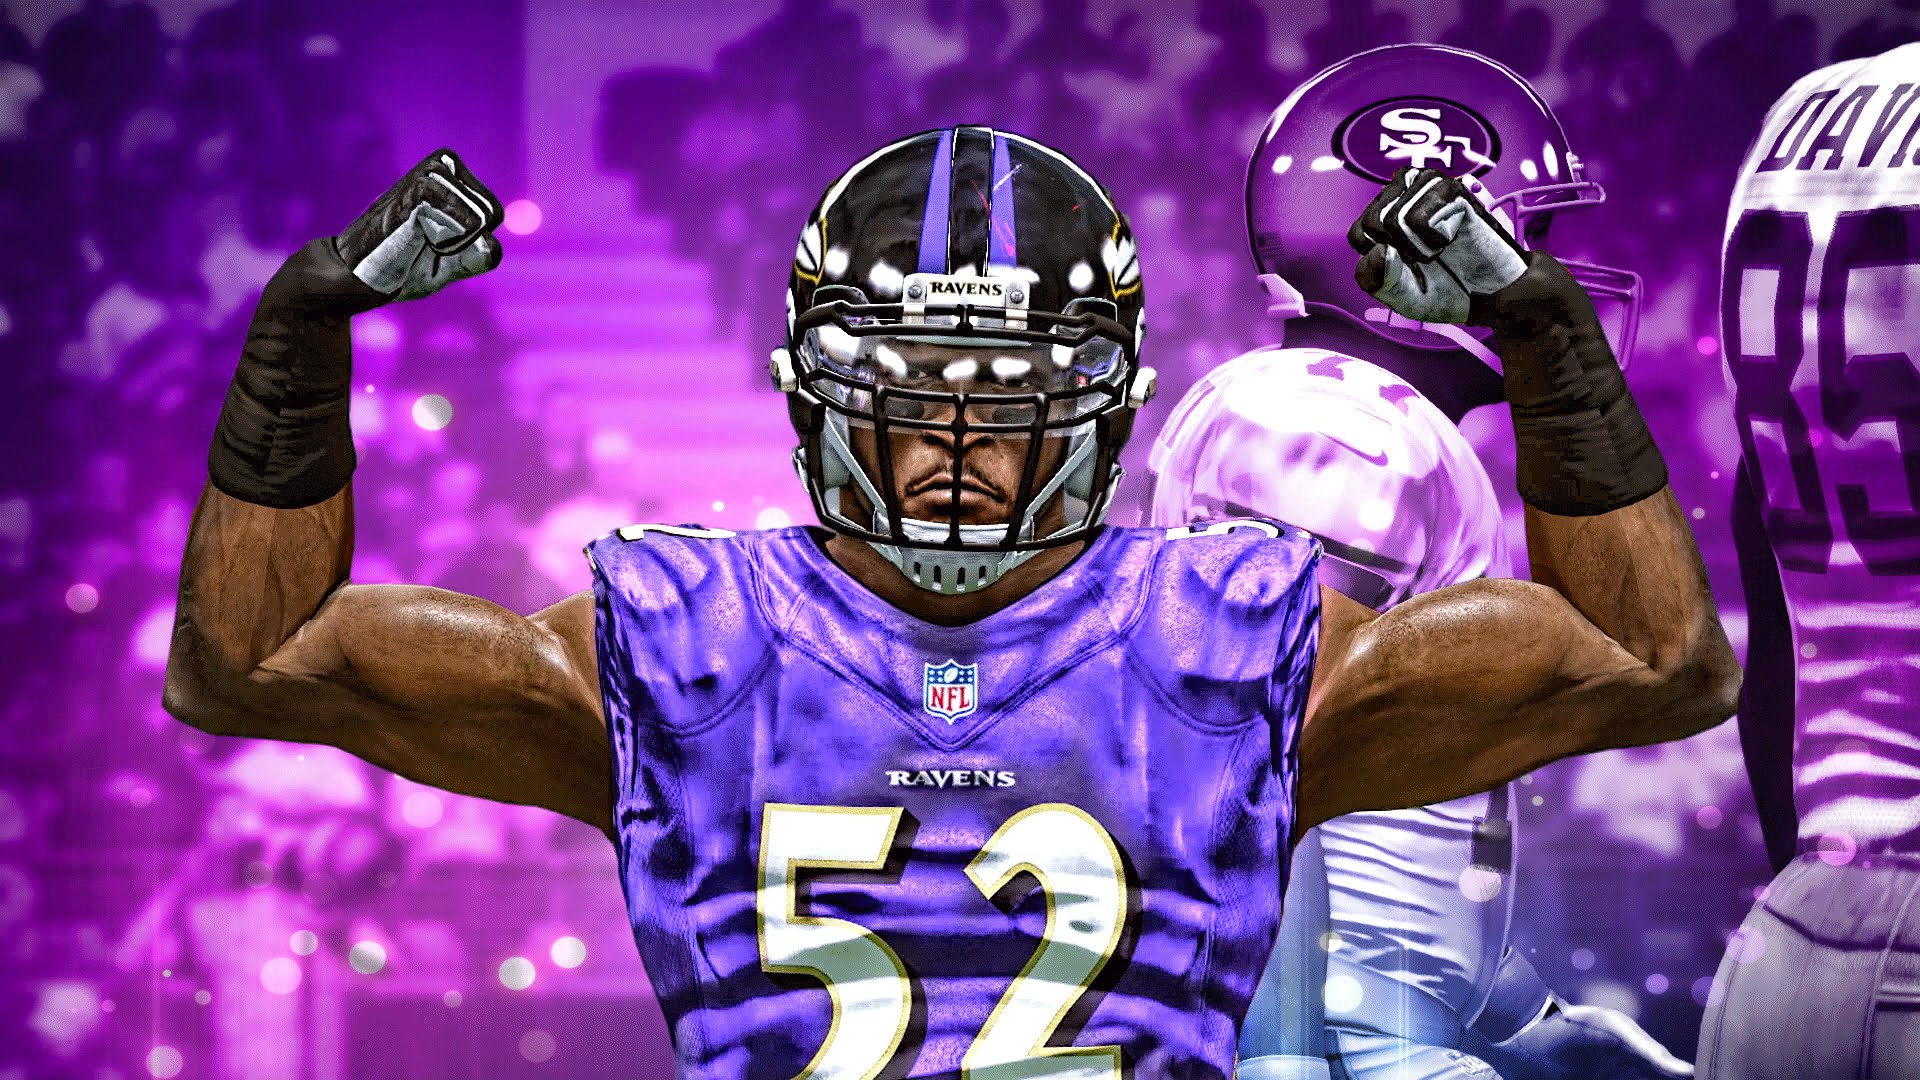 Madden 15 Connected Franchise | Ray Lewis Returns #1 | Preseason Game 1 (Early Gameplay)